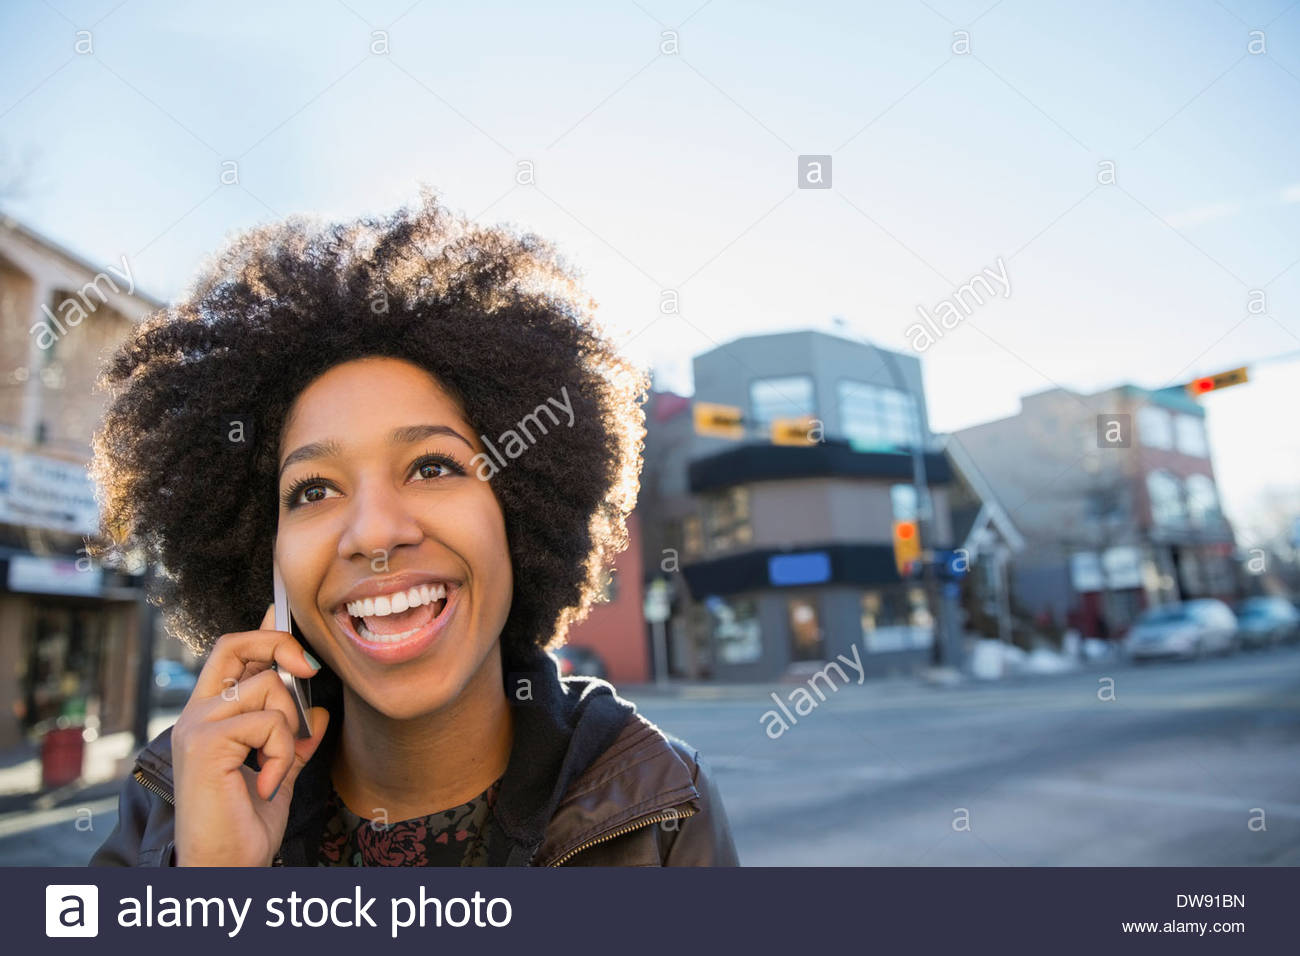 Smiling woman answering call on city street - Stock Image